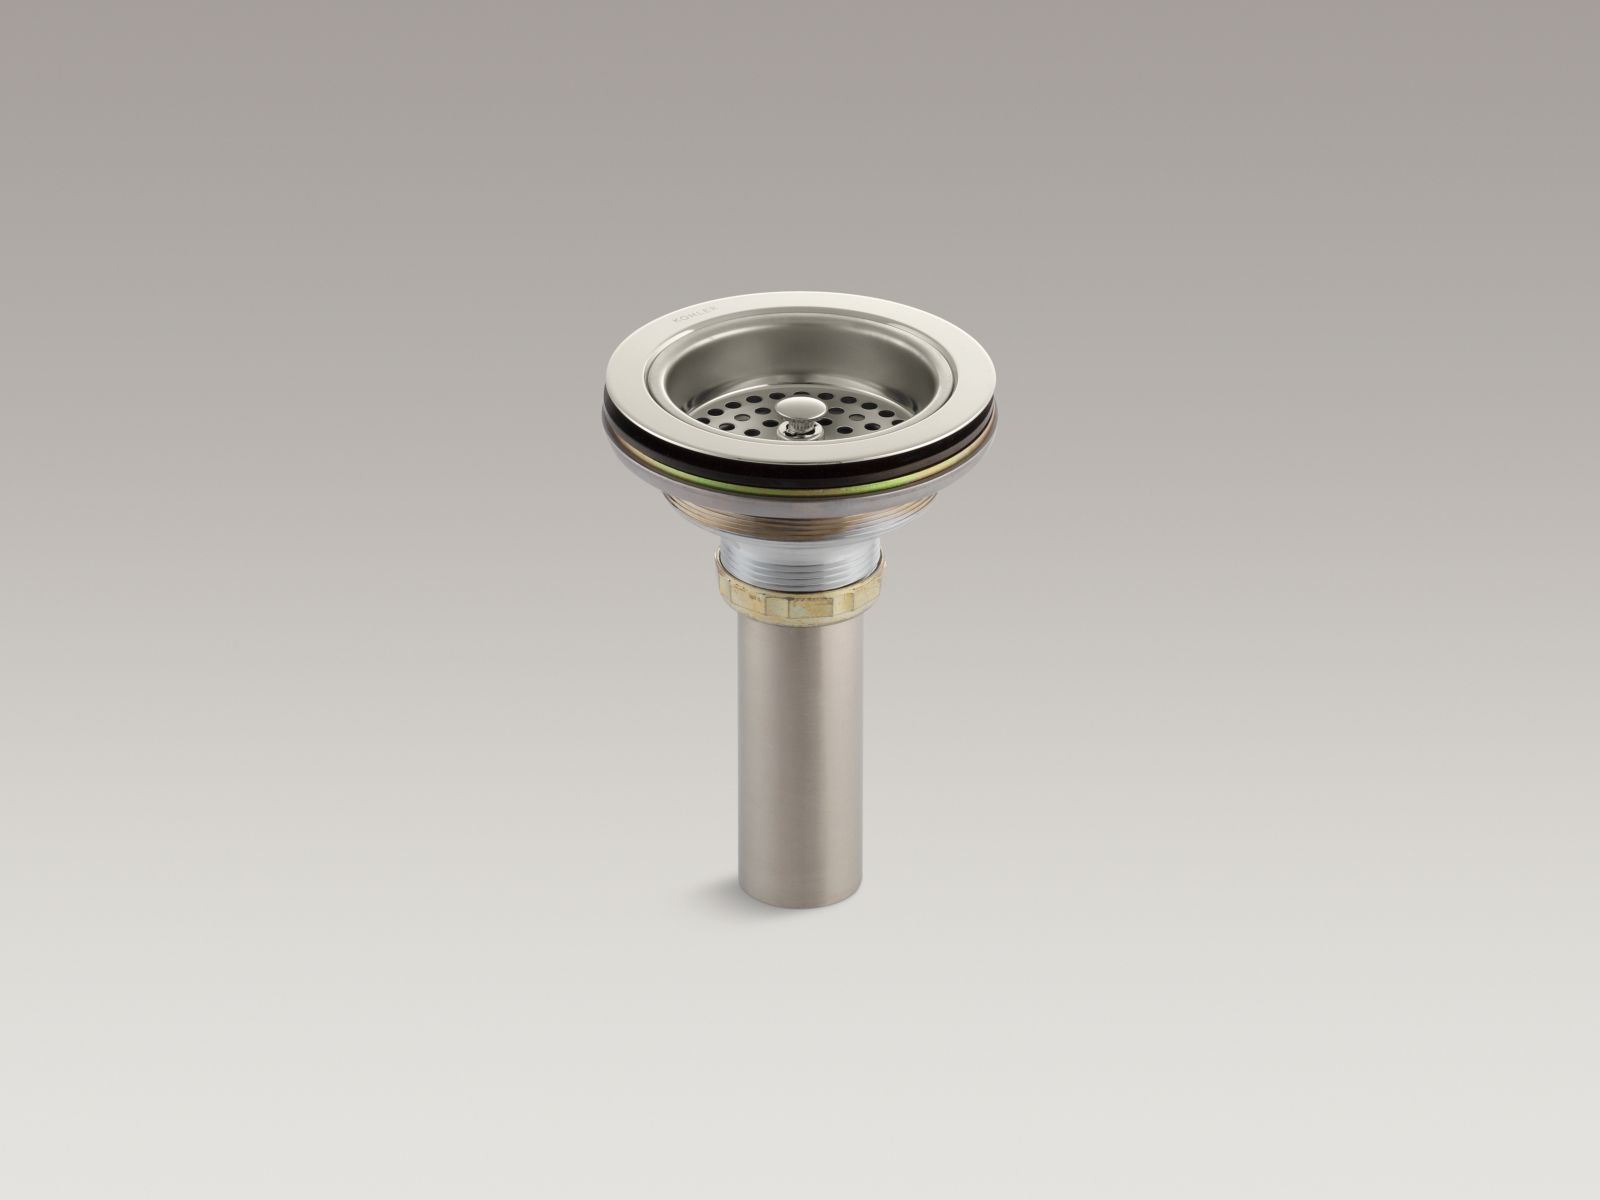 Kohler K-8801-SN Brass Basket Strainer with Tailpiece from the Duostrainer Collection, Polished Nickel